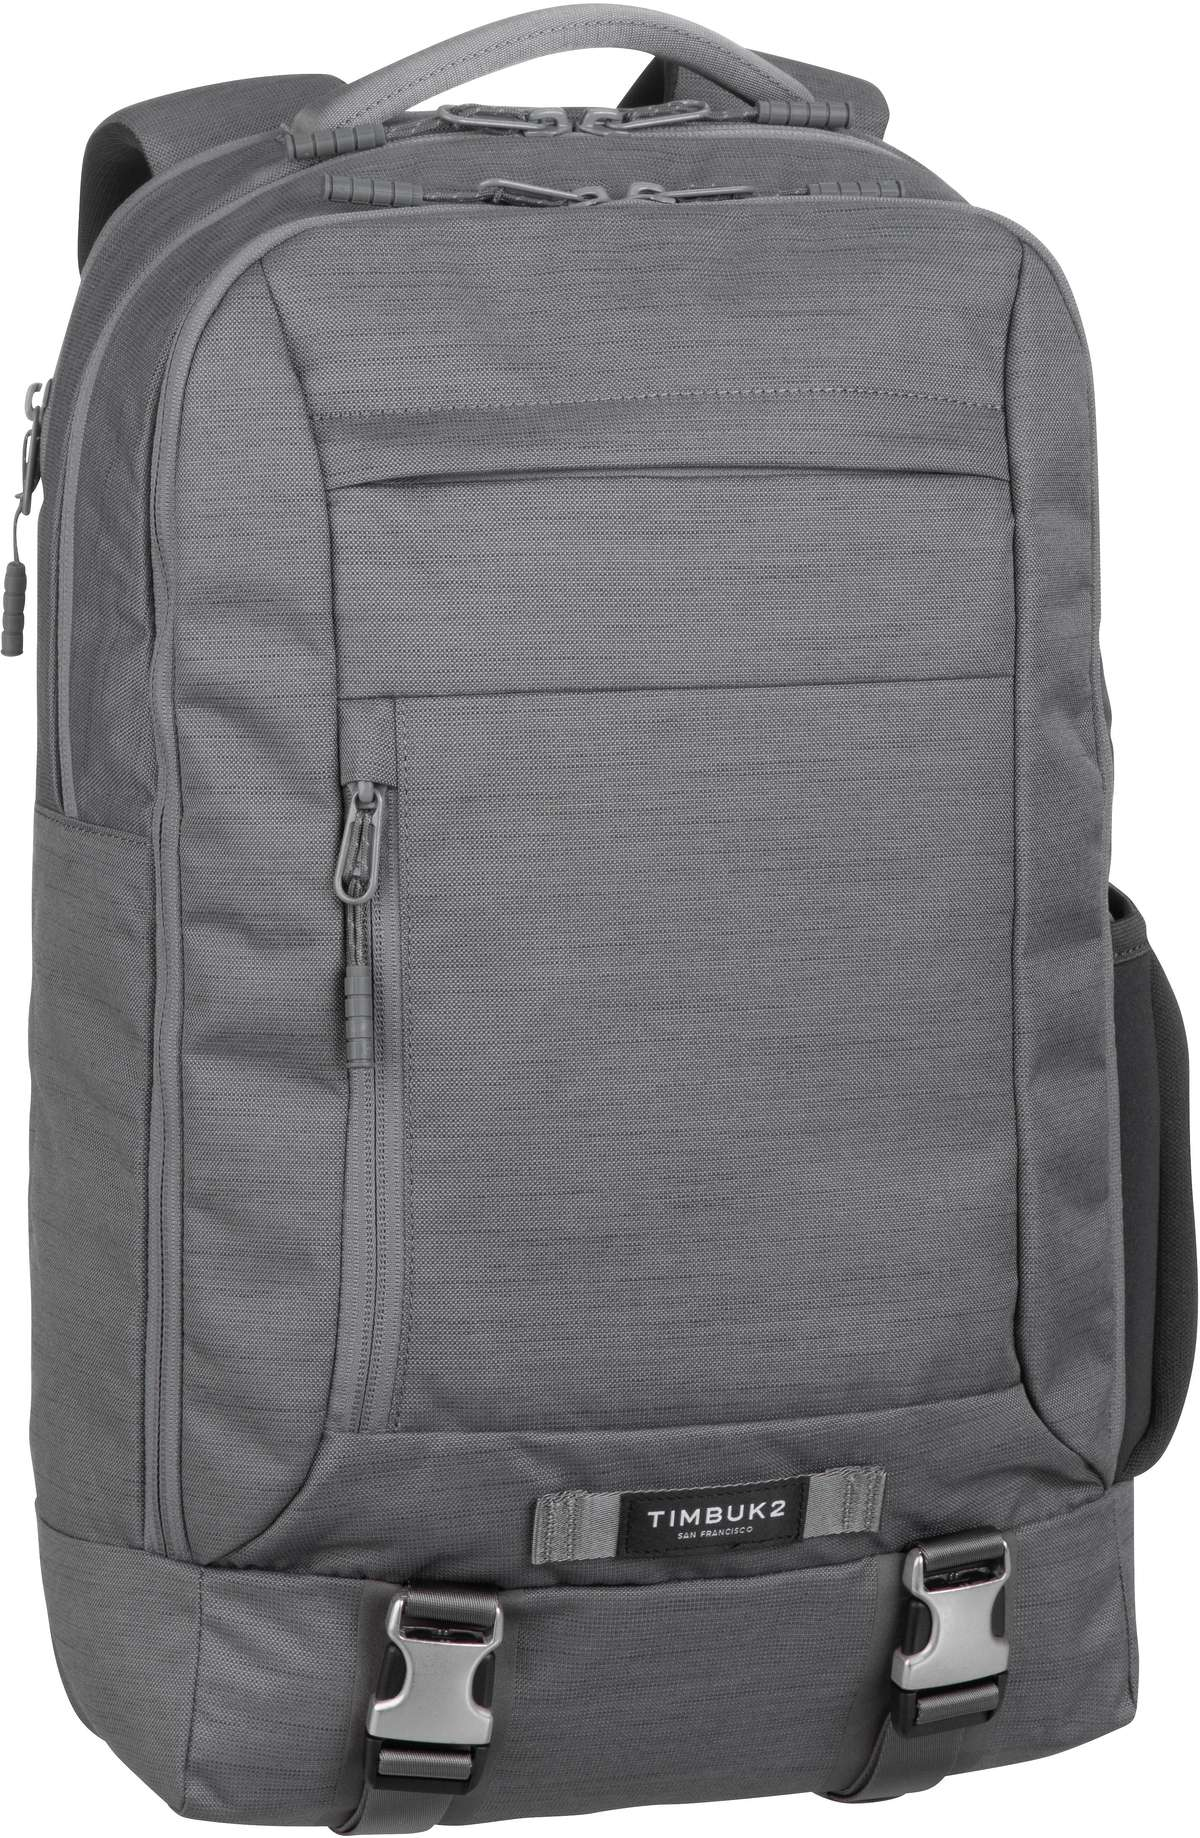 Laptoprucksack The Authority Pack Kinetic (28 Liter)